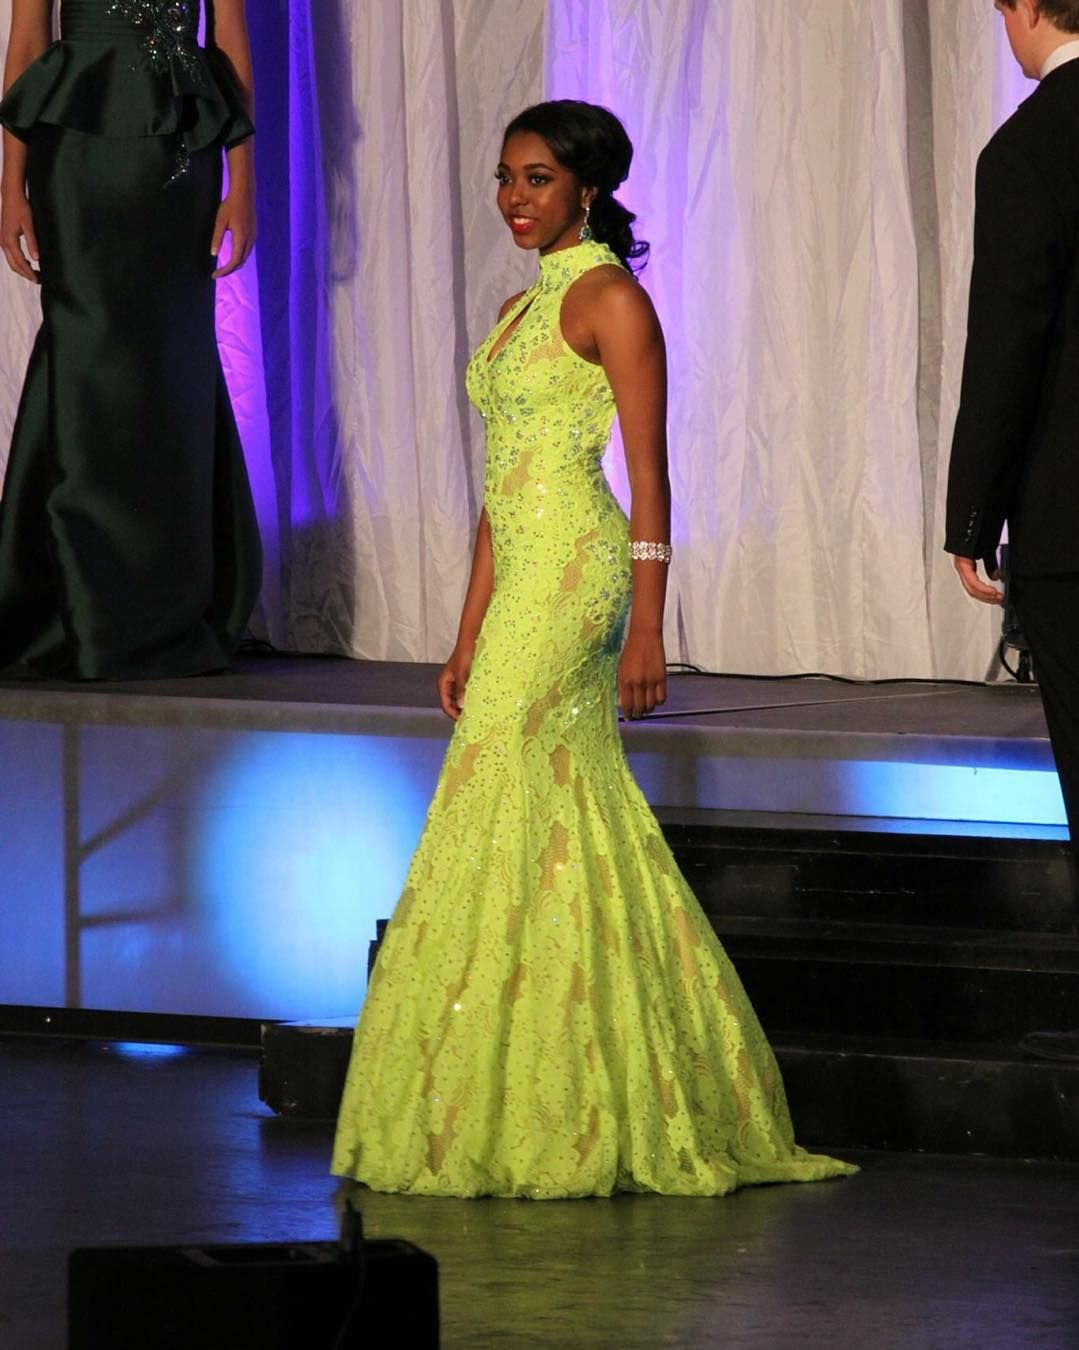 Another beautiful client Kyra Callens in evening gown competition at ...